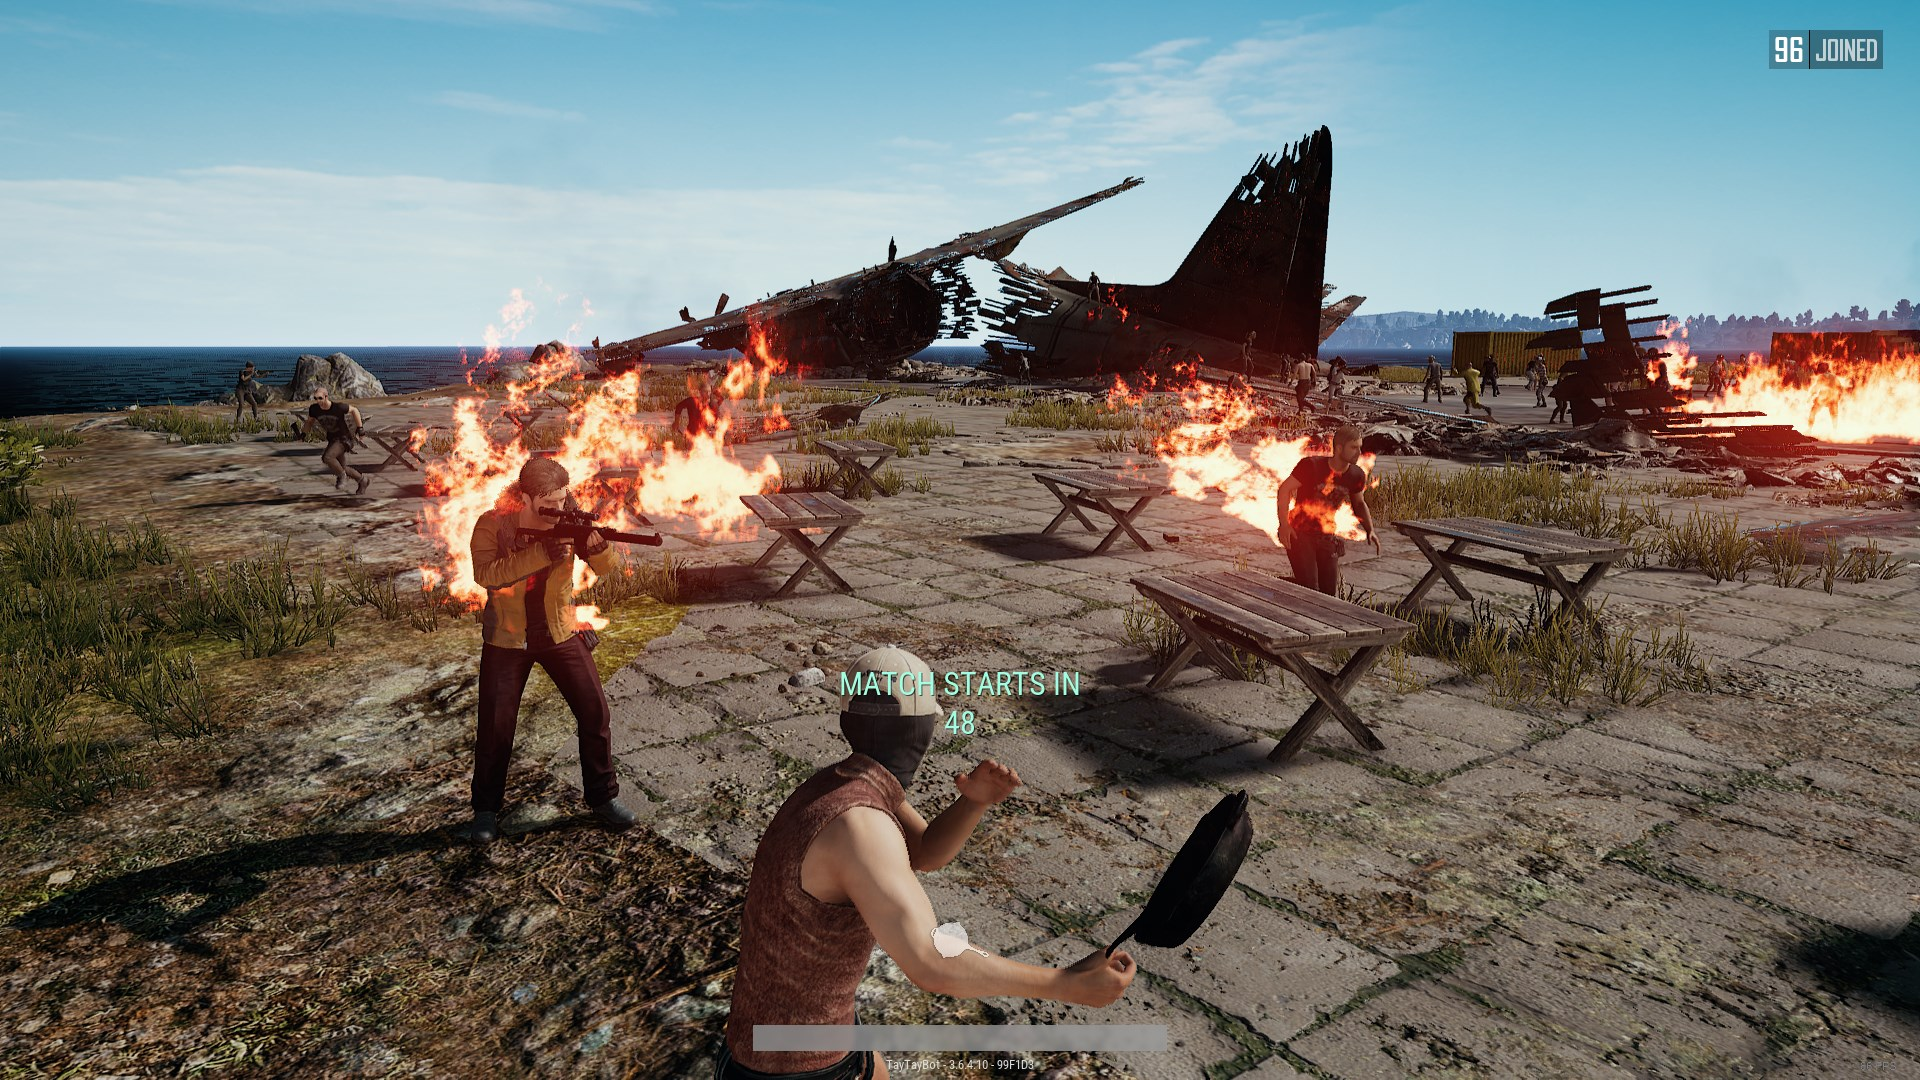 PUBG boasts over 4 million players on Xbox One